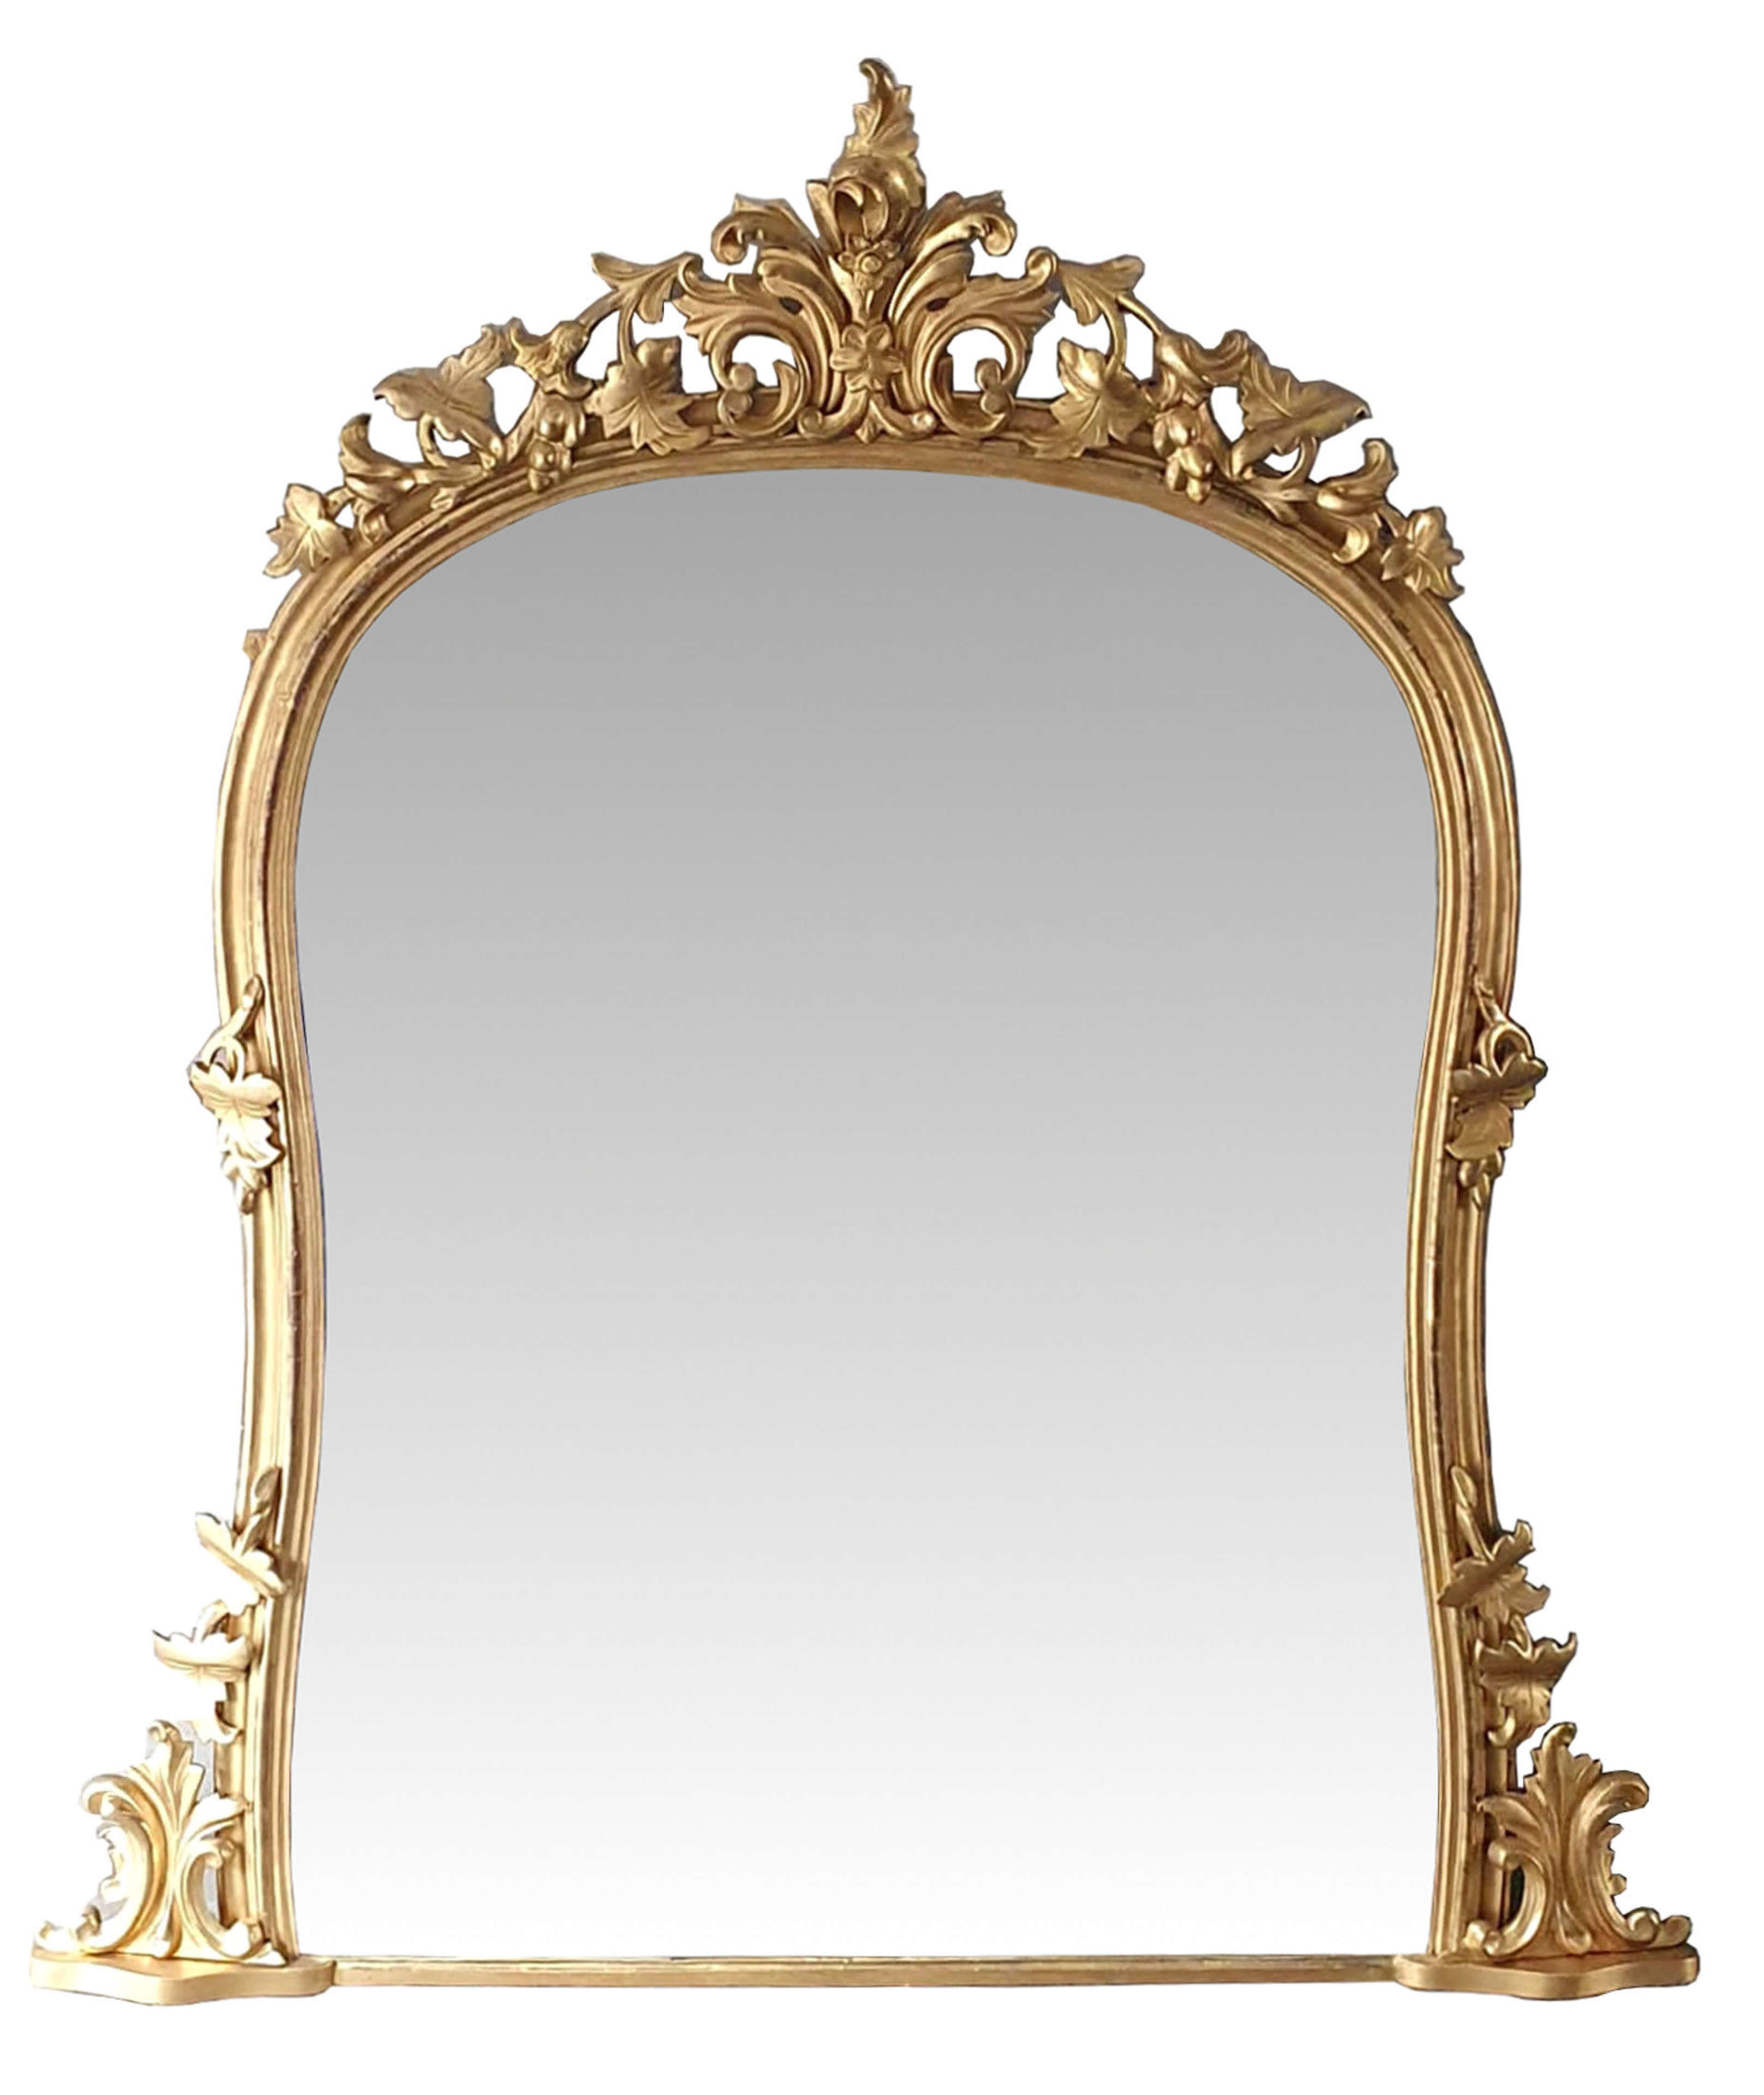 Large 19th Century Arch Top Gilt Overmantle Mirror